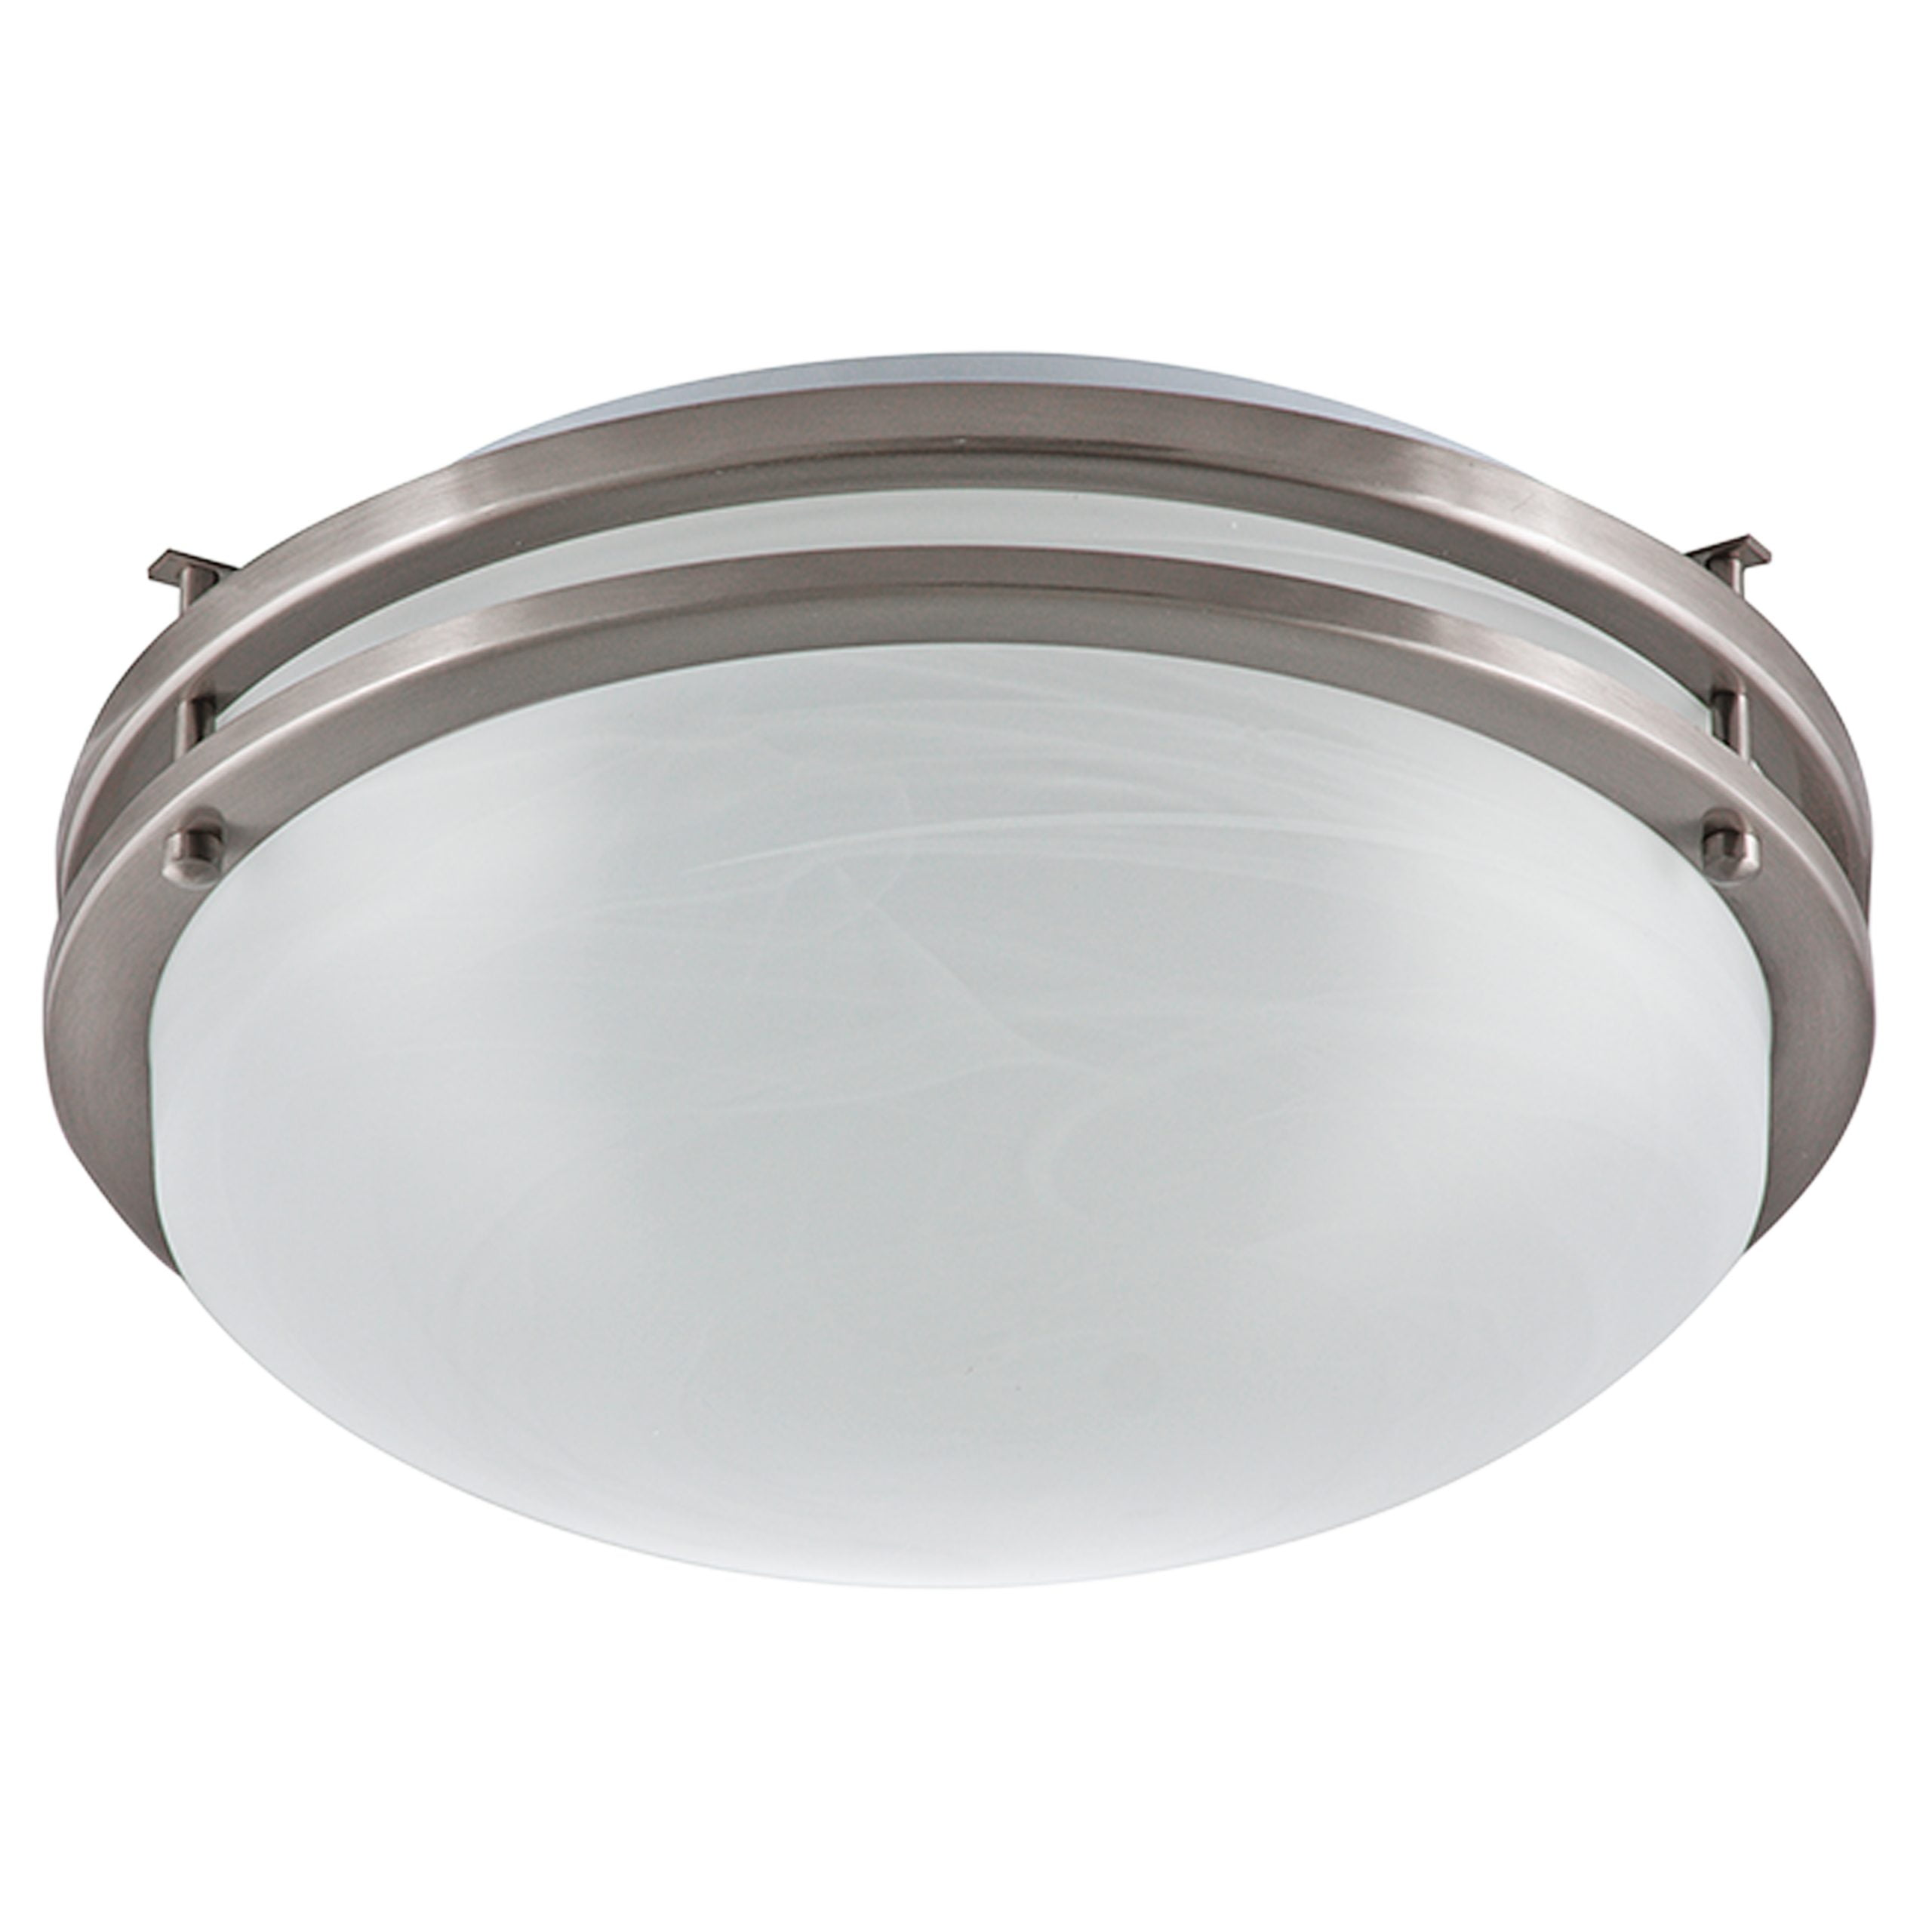 "14.5""W Brushed Nickel Ceiling Light with Frosted Glass Shade"